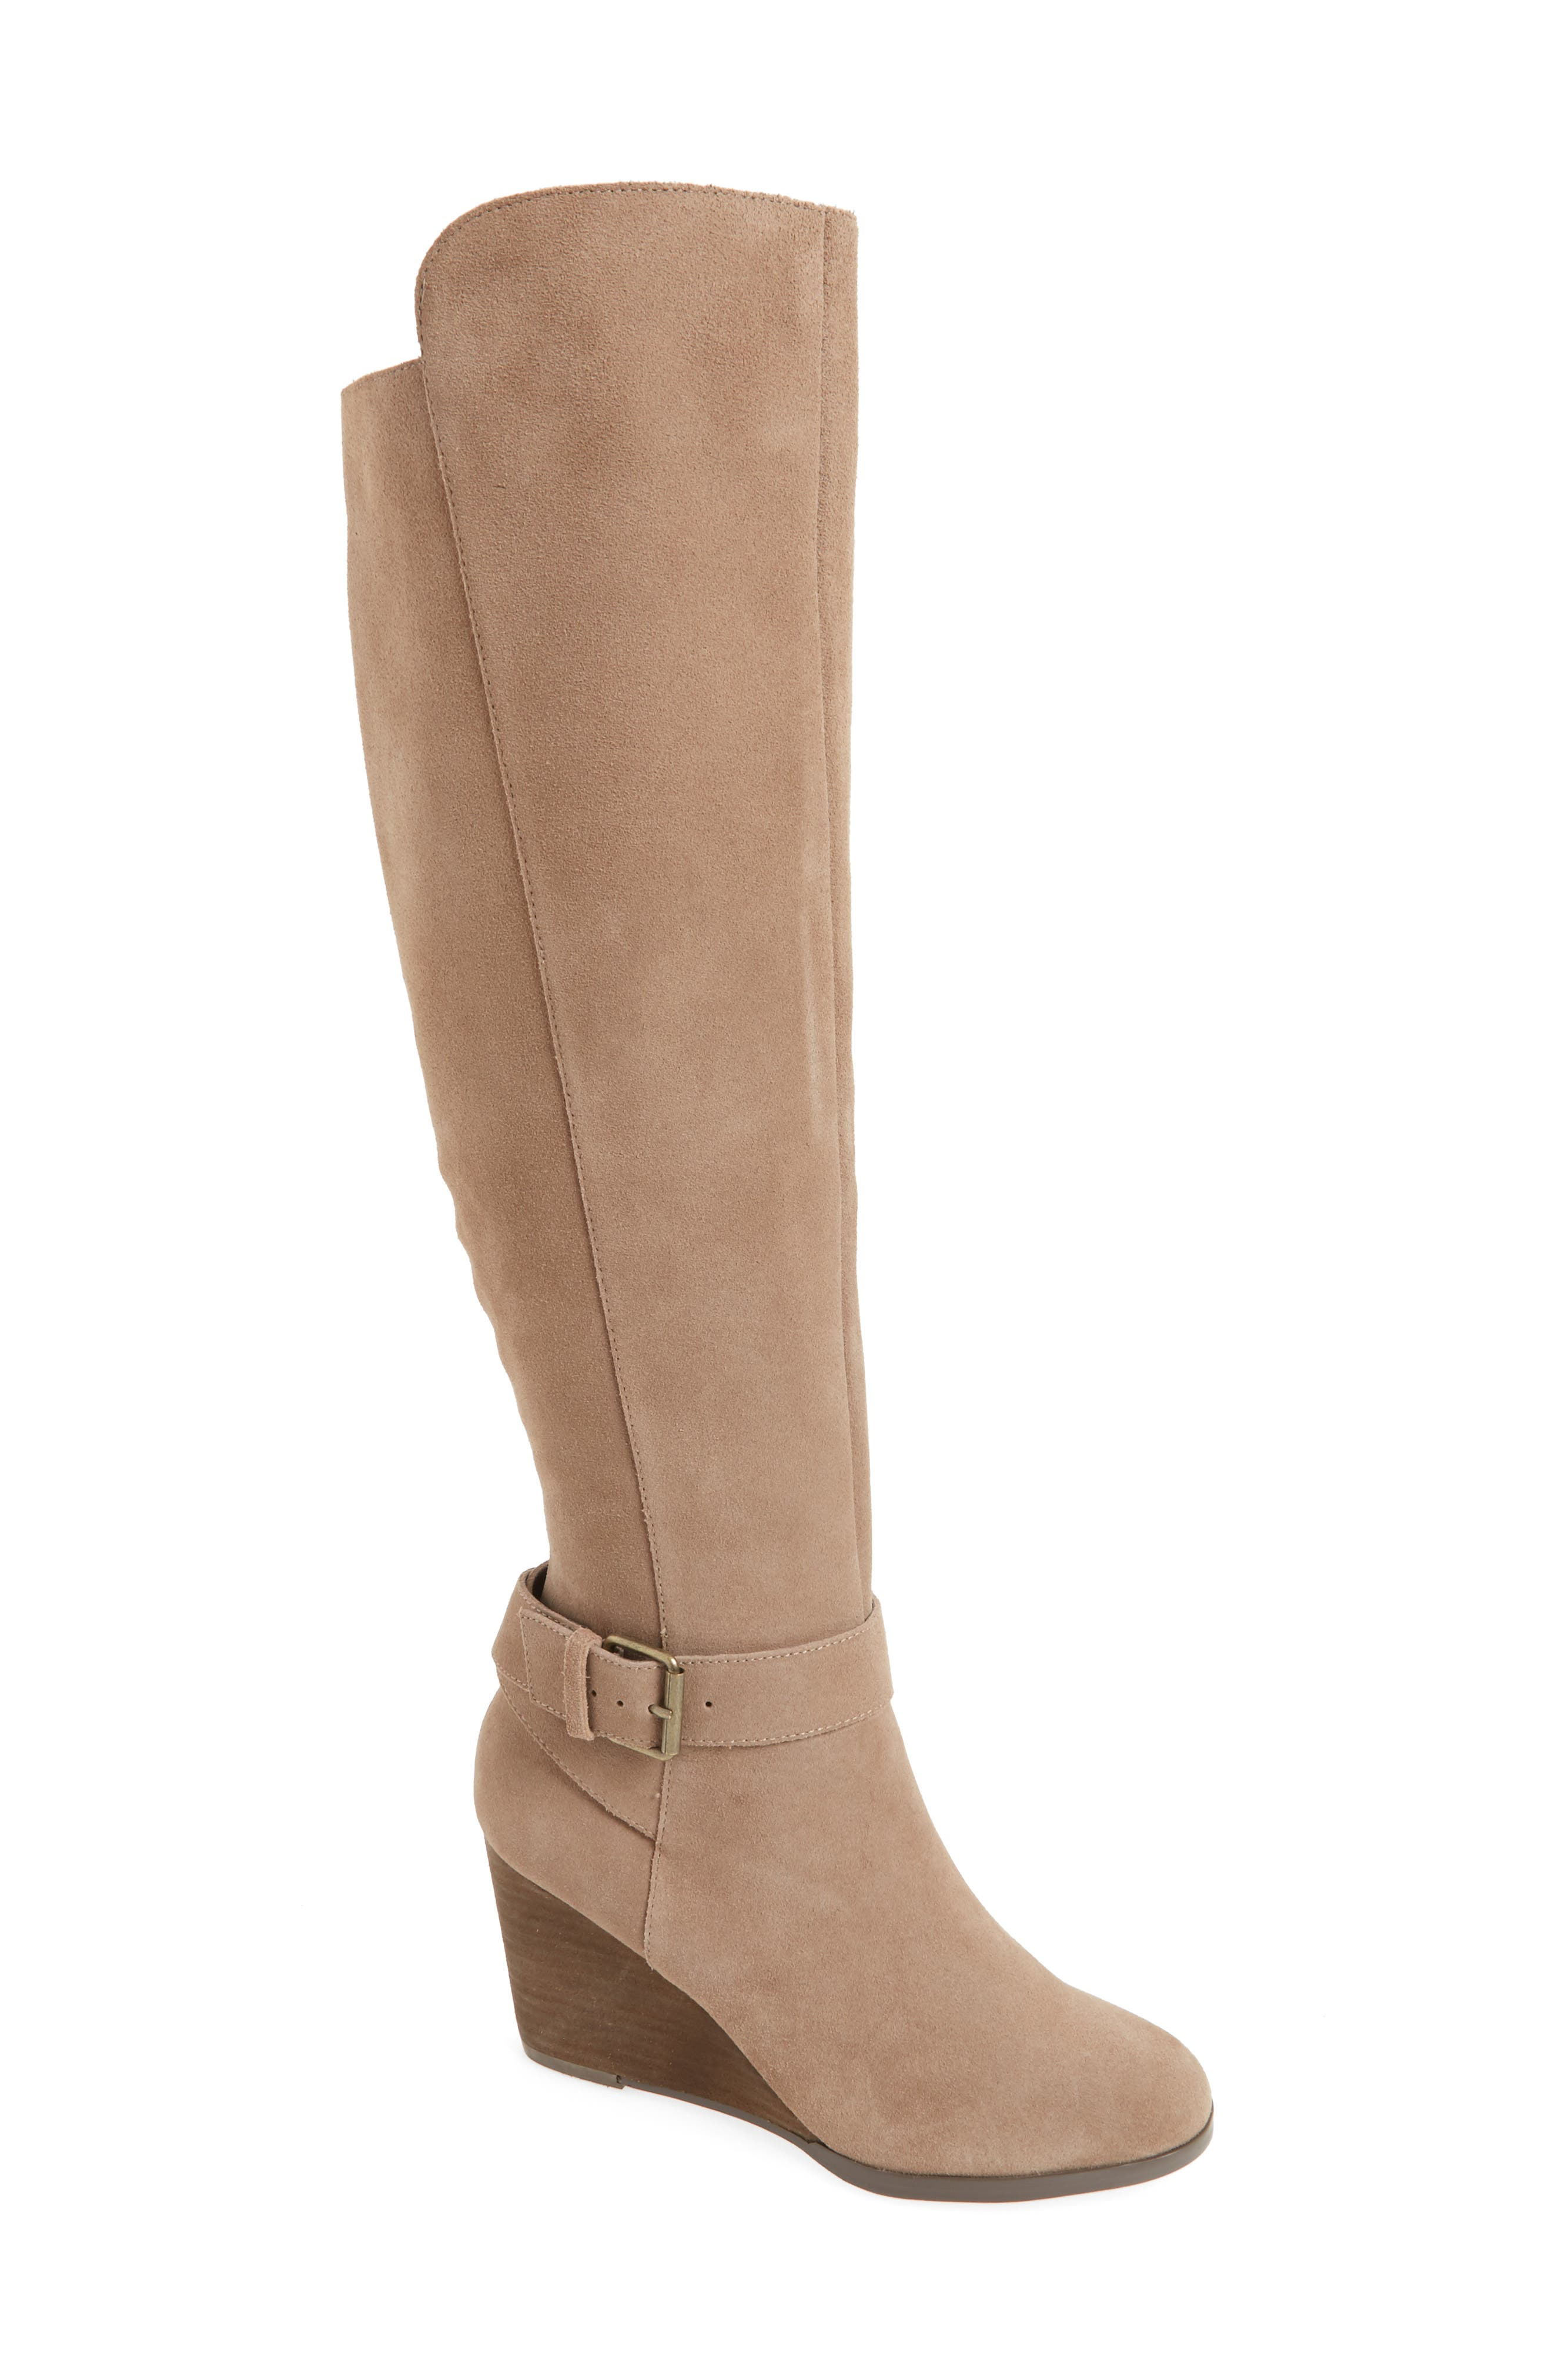 Alternate Image 1 Selected - Sole Society Paloma Over the Knee Boot (Women)